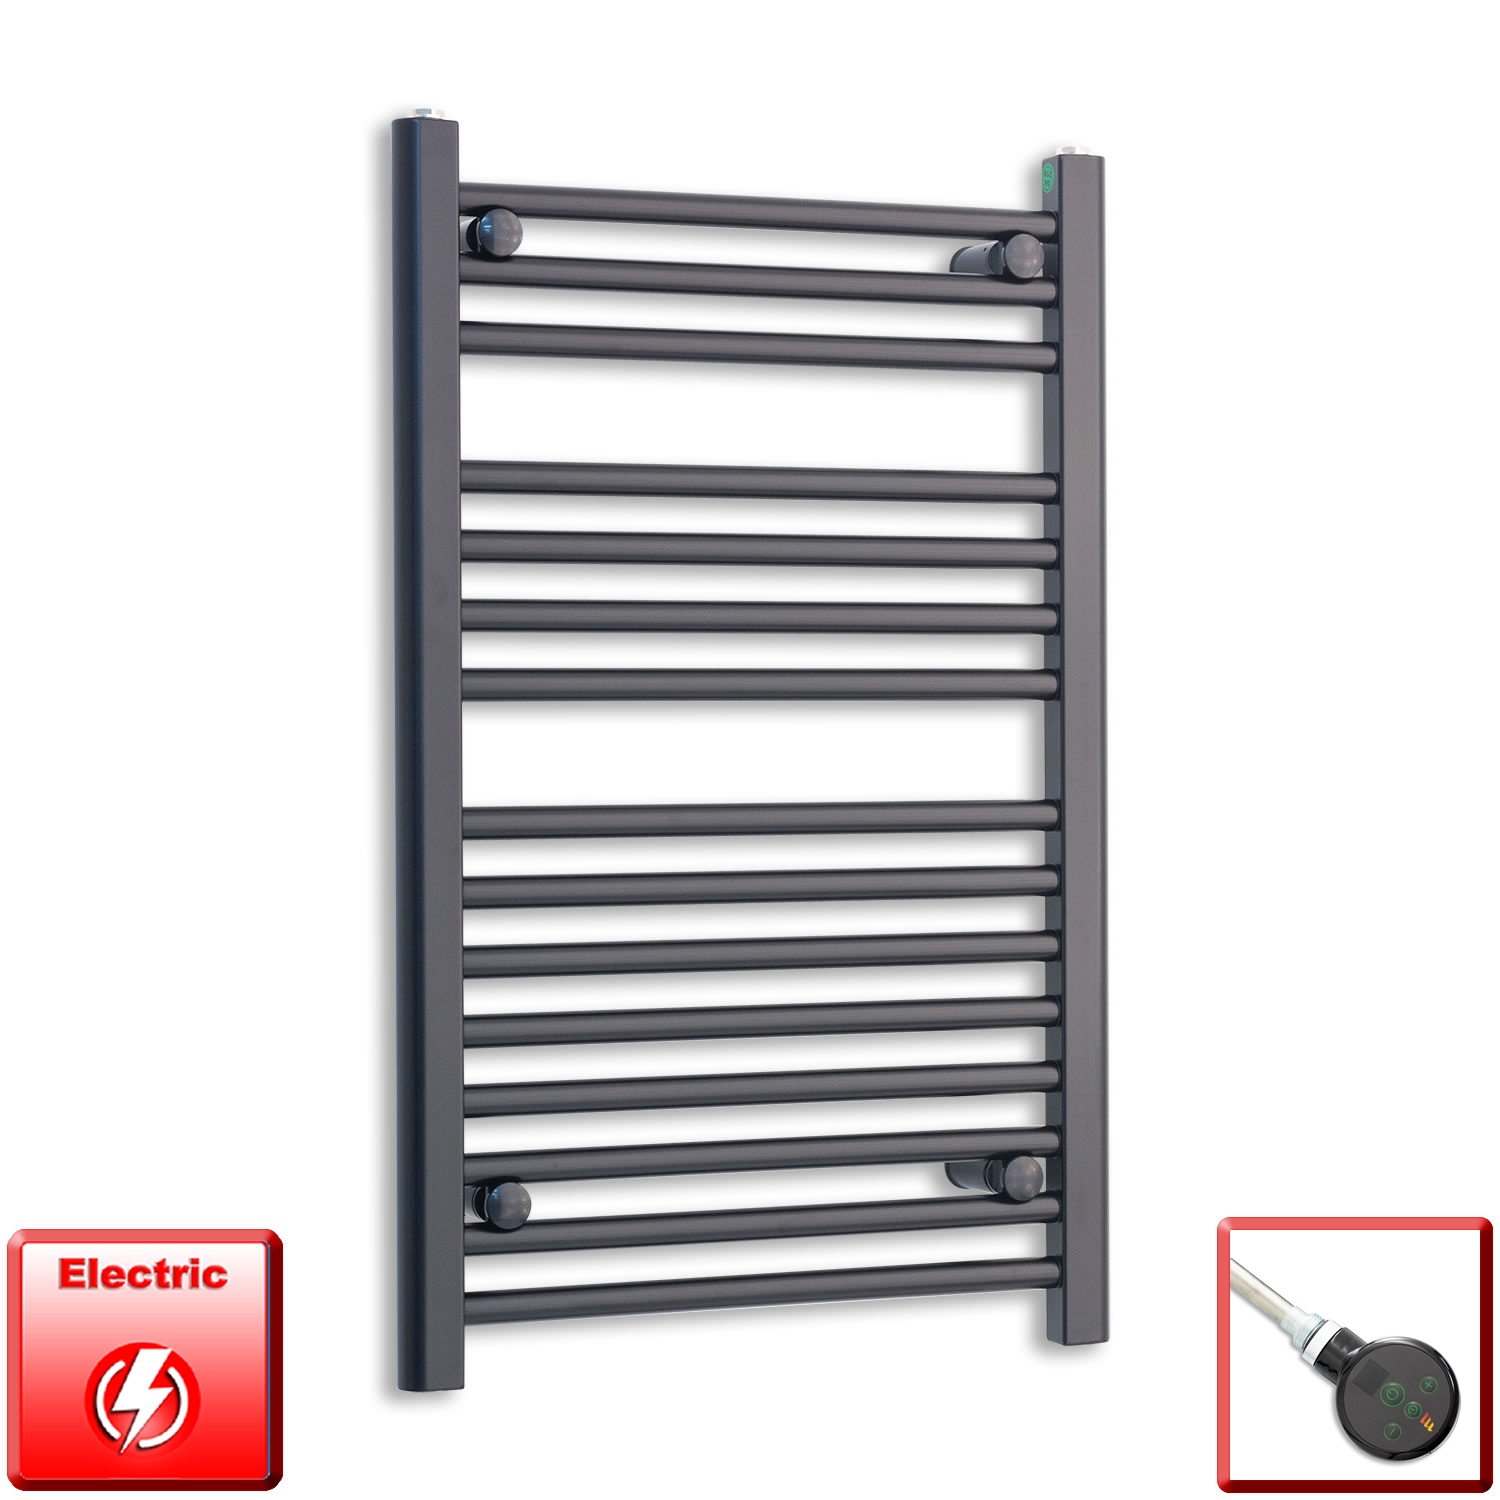 450mm Wide 800mm High Flat Black Pre-Filled Electric Heated Towel Rail Radiator HTR,DIGI Thermostatic